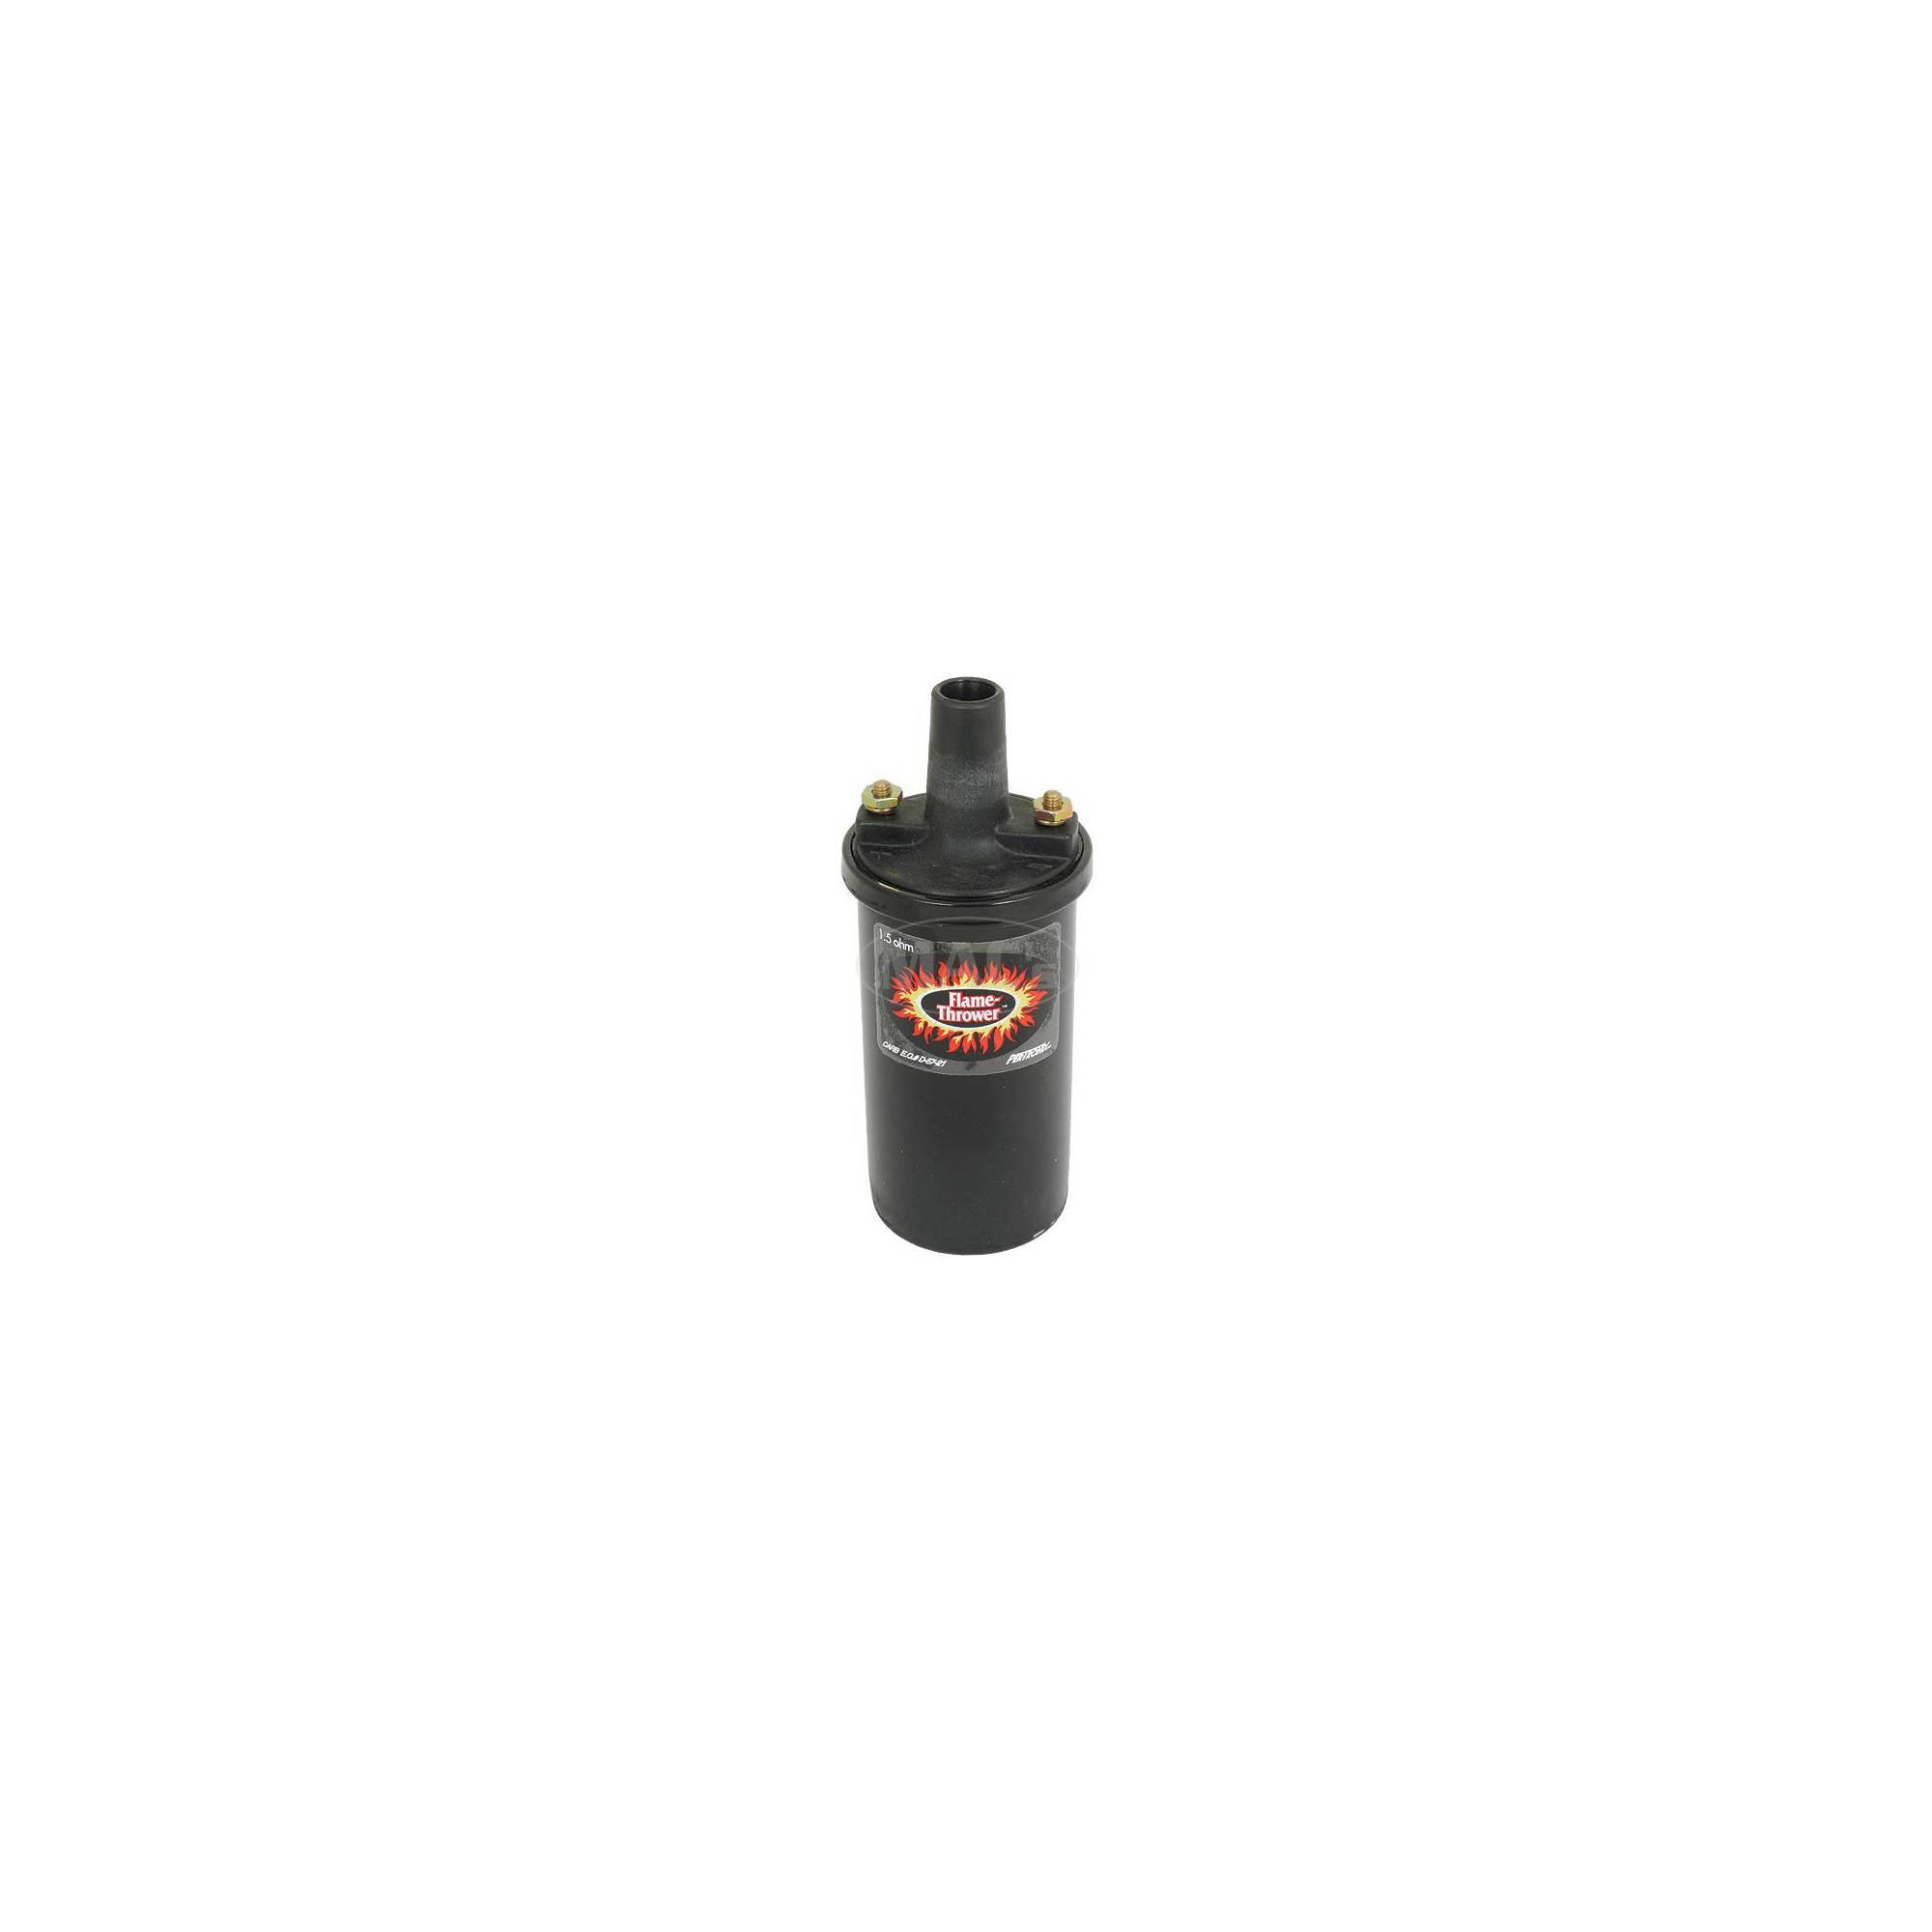 Pertronix Flame Thrower Coil Black Epoxy Filled 40,000 1.5 ohm  Free Shipping